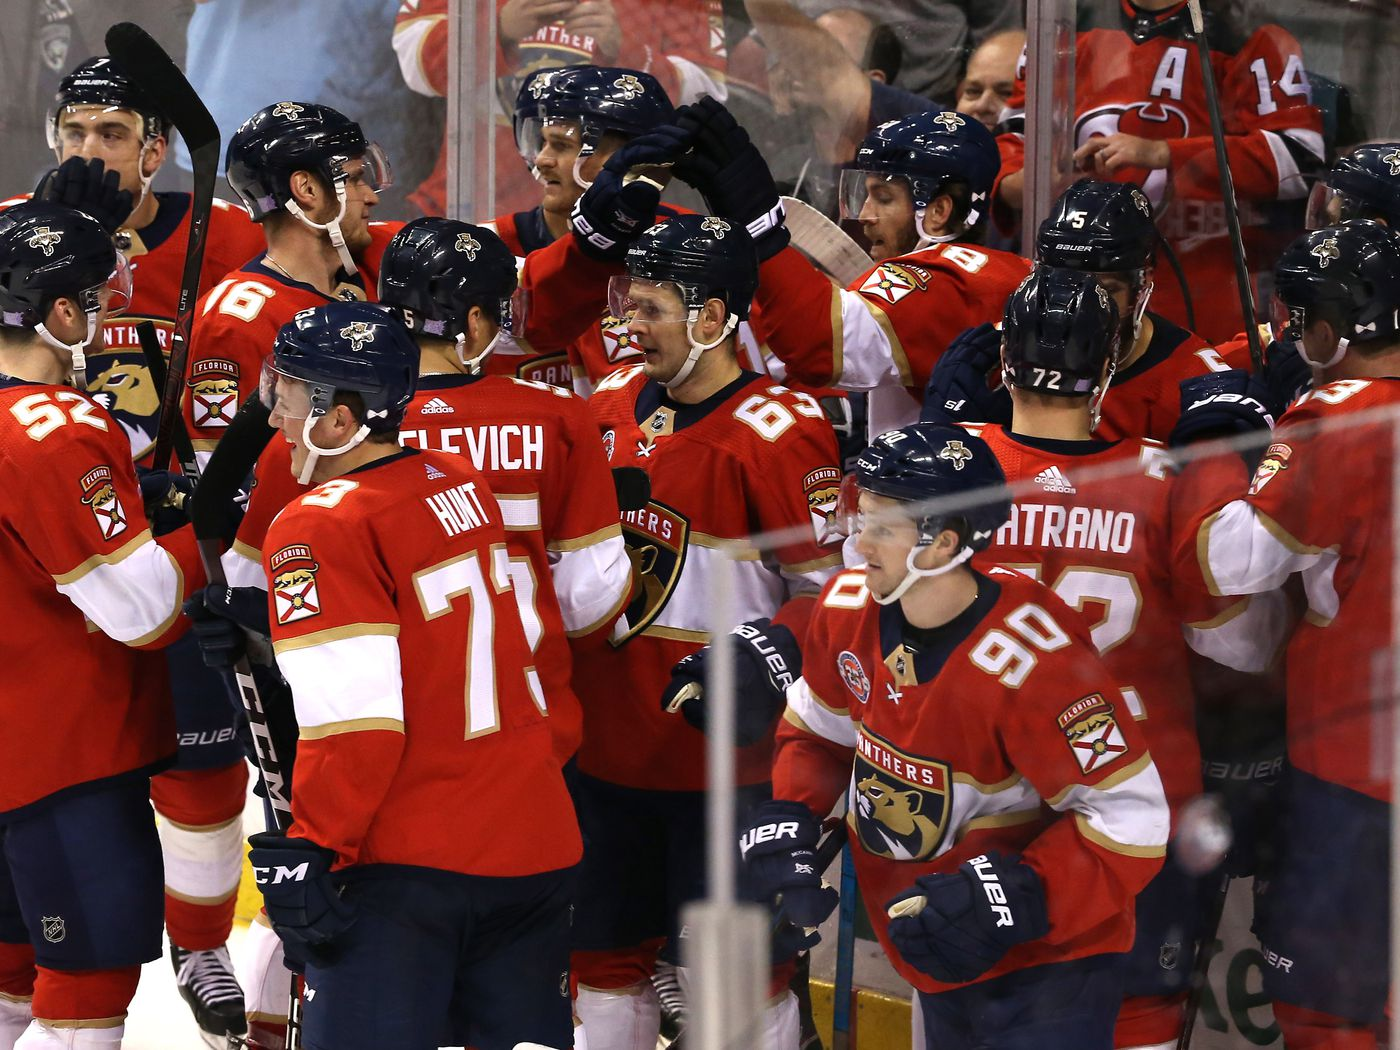 a6121aeb7c6 Recap  Hoffman goal gives Panthers 4-3 overtime win over Devils. New ...